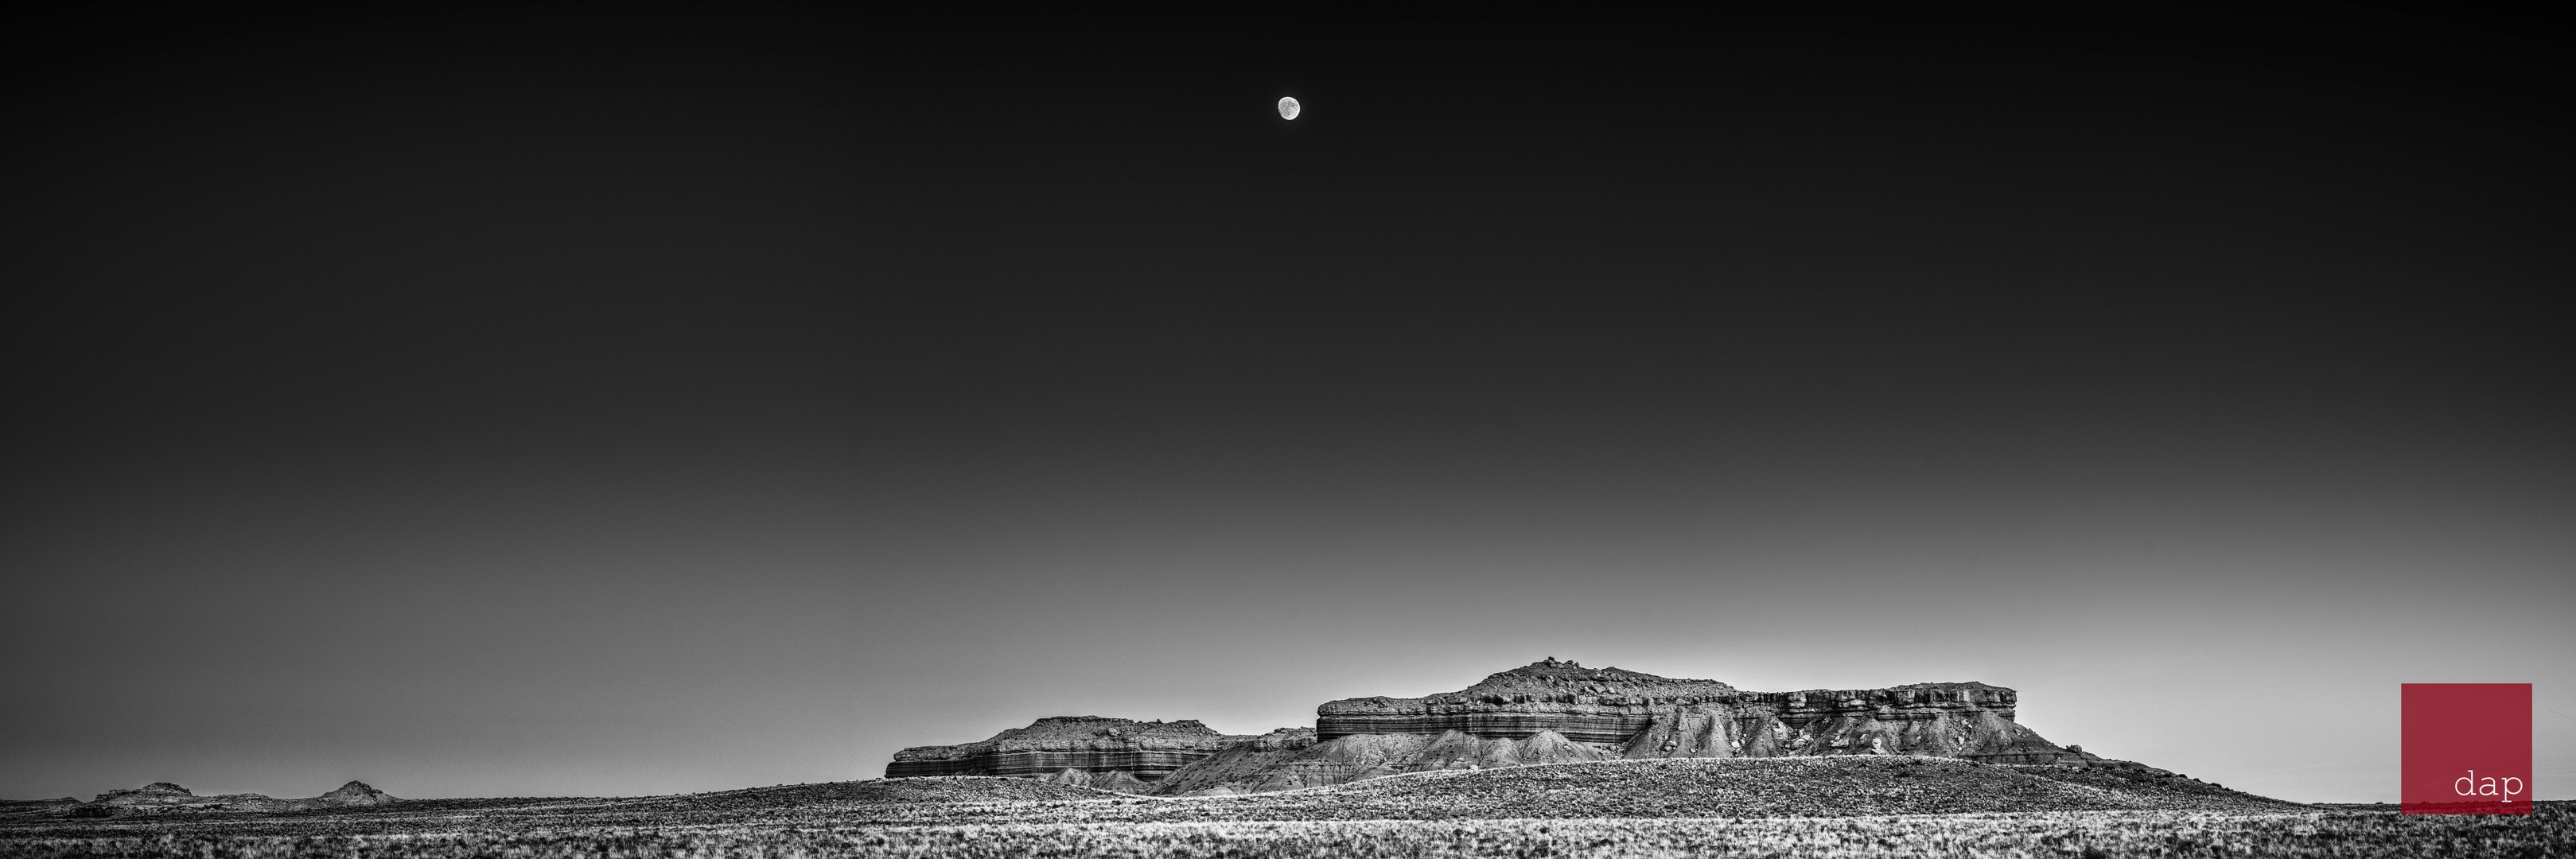 Green River Moonrise 1 bw